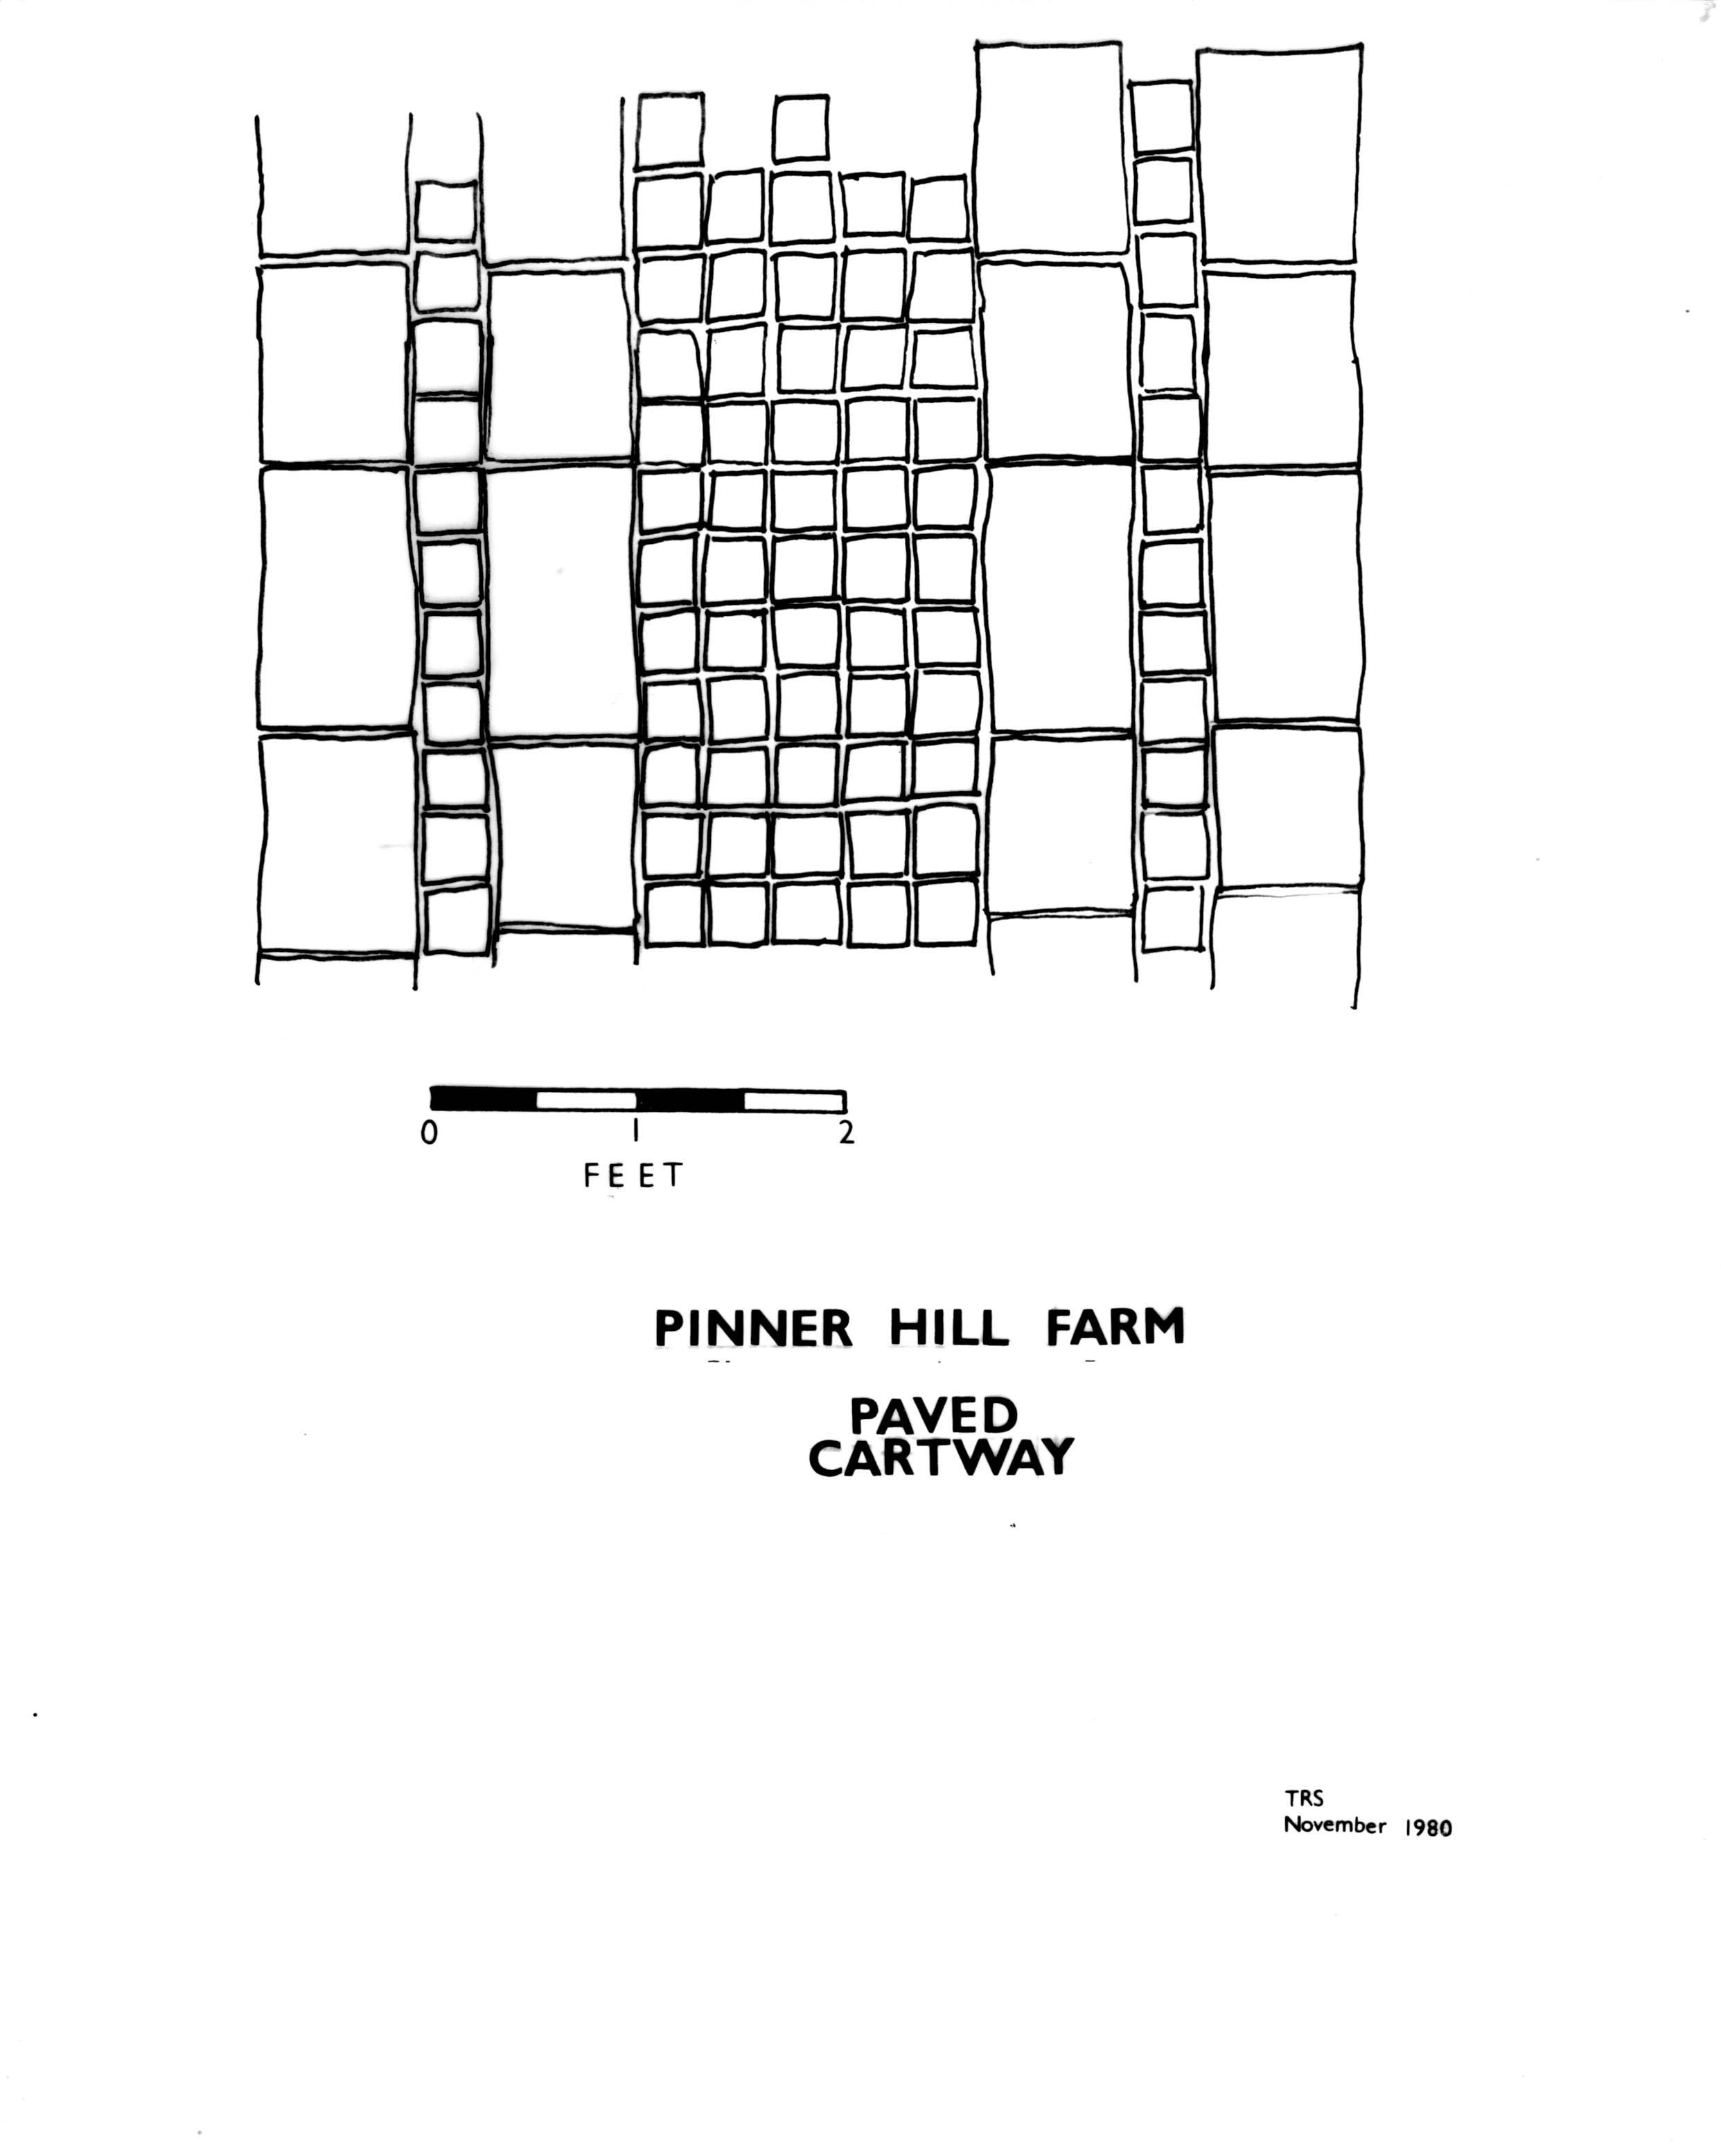 Fig 3. Pinner Hill Farm paved cartway. TRS, November 1980